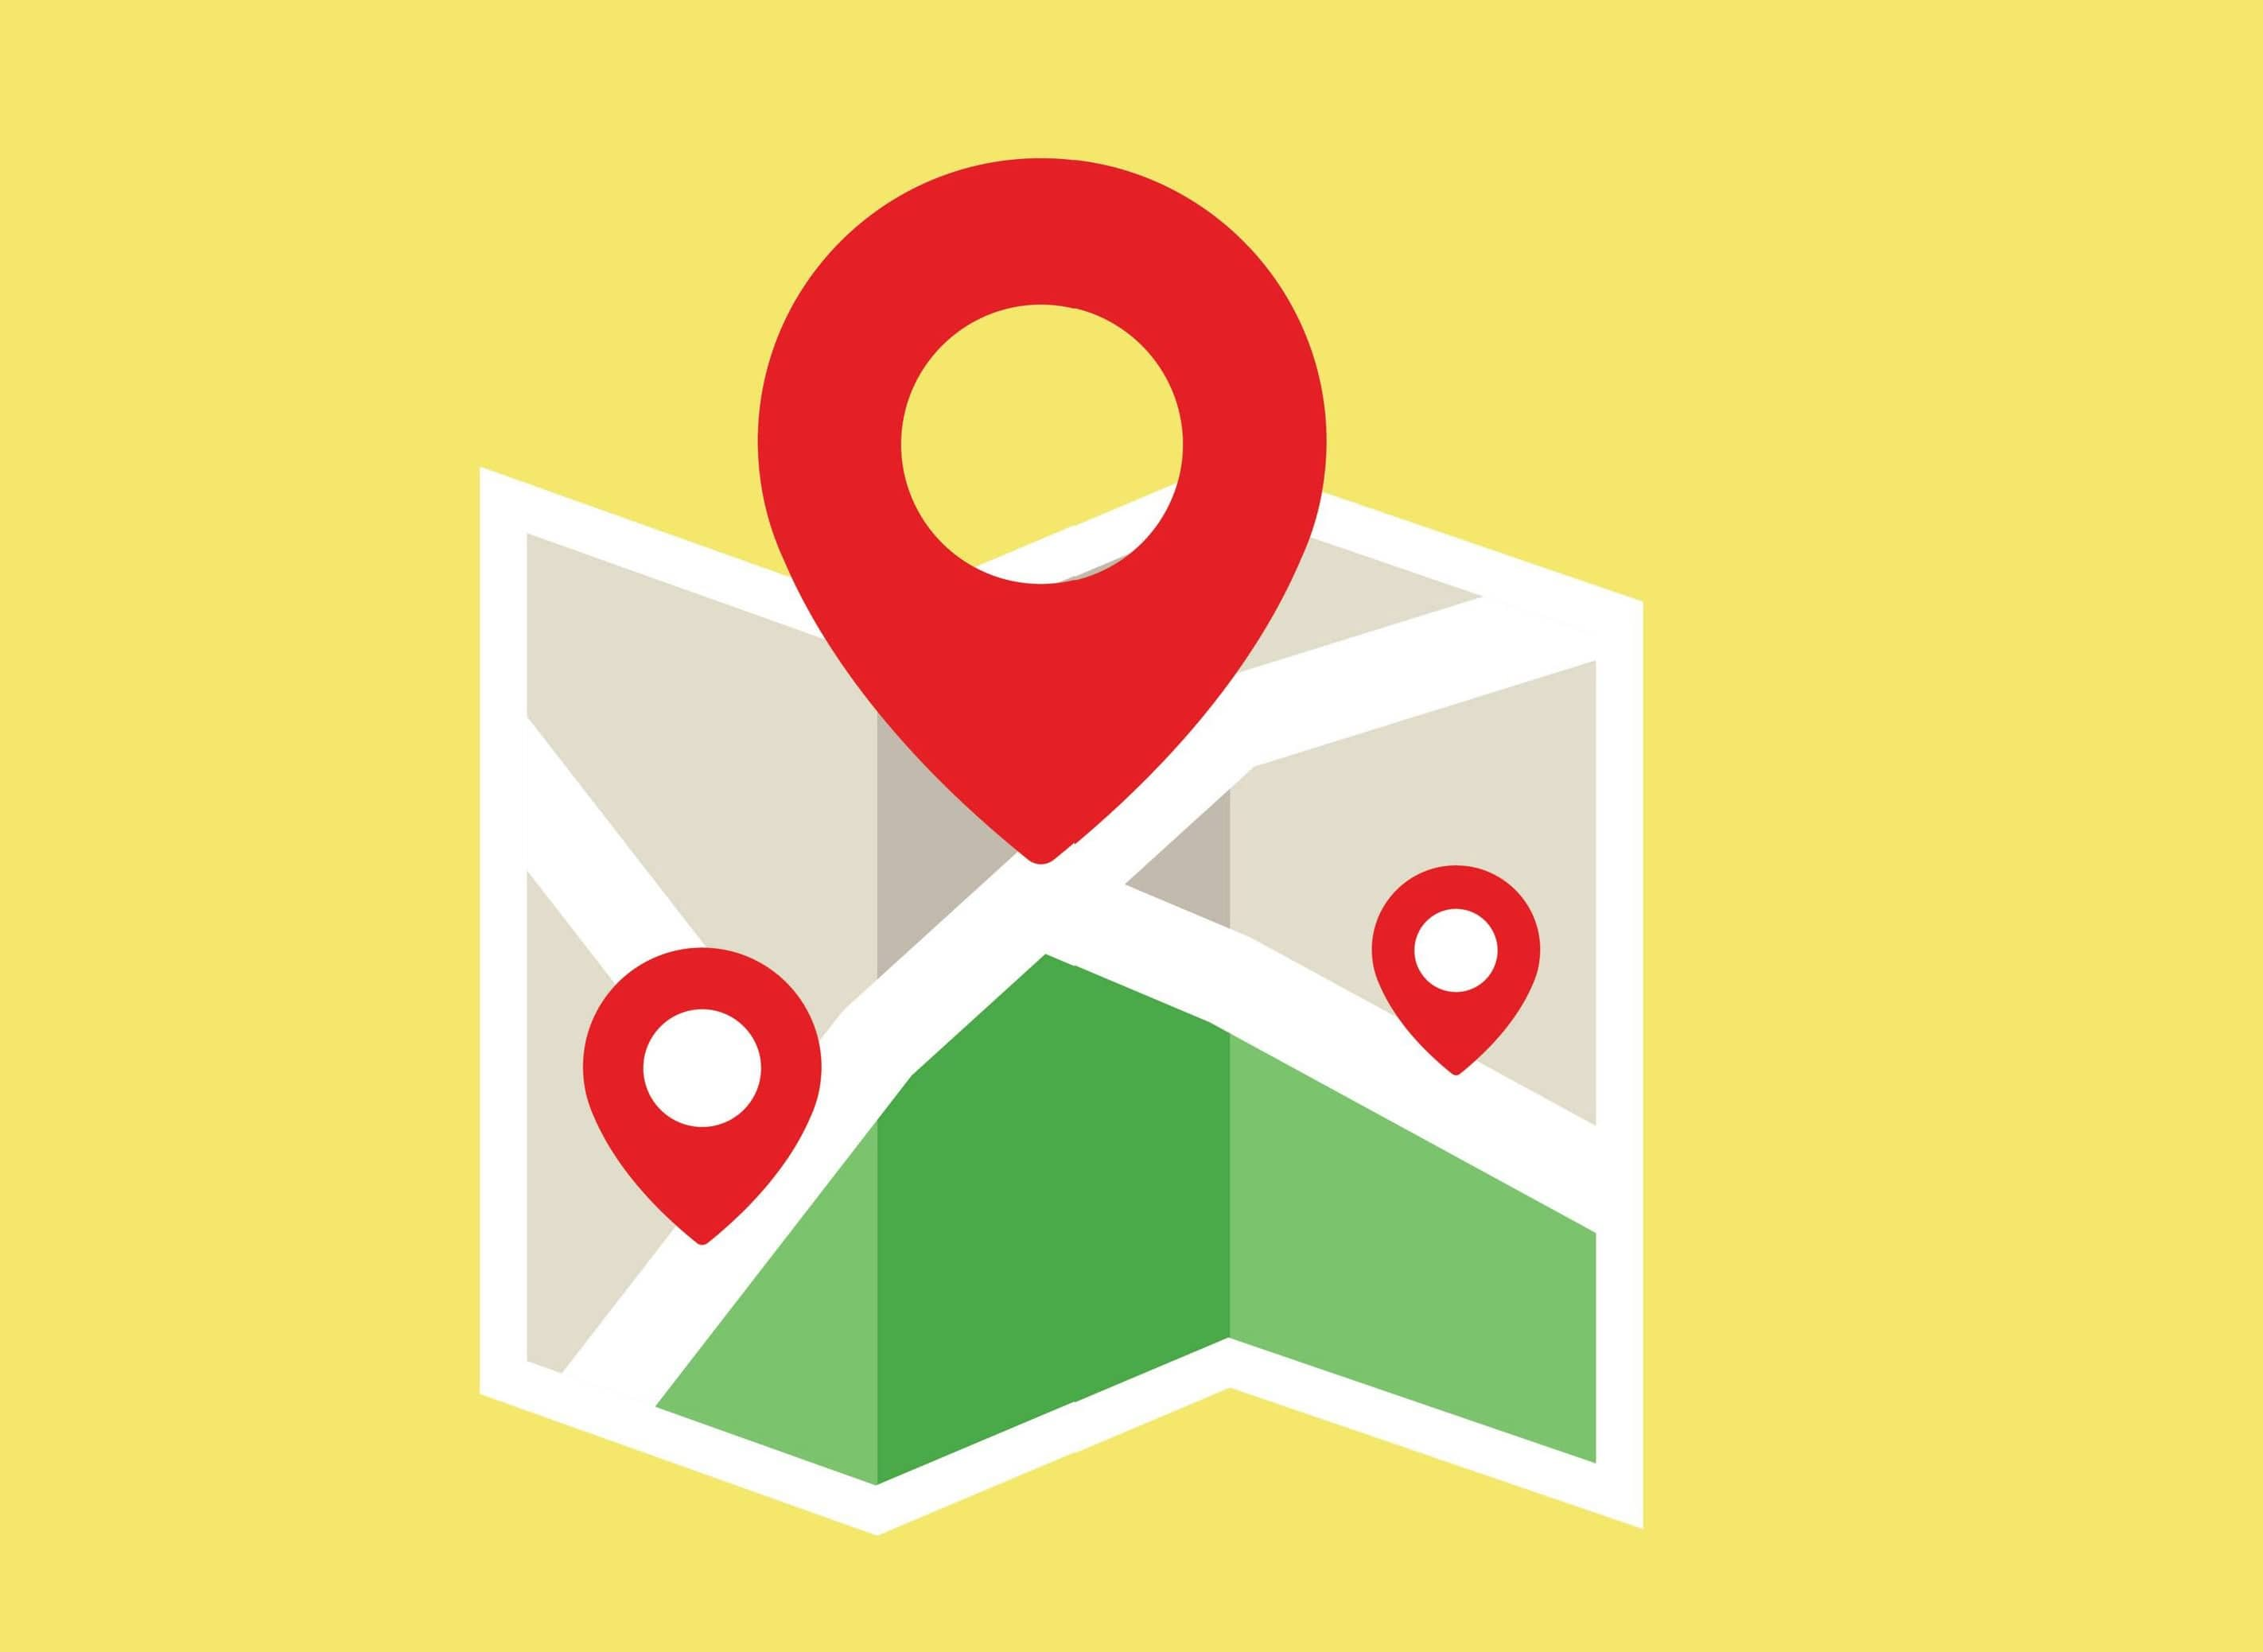 GOOGLE LOCATION-TRACKING TACTICS TROUBLED ITS OWN ENGINEERS